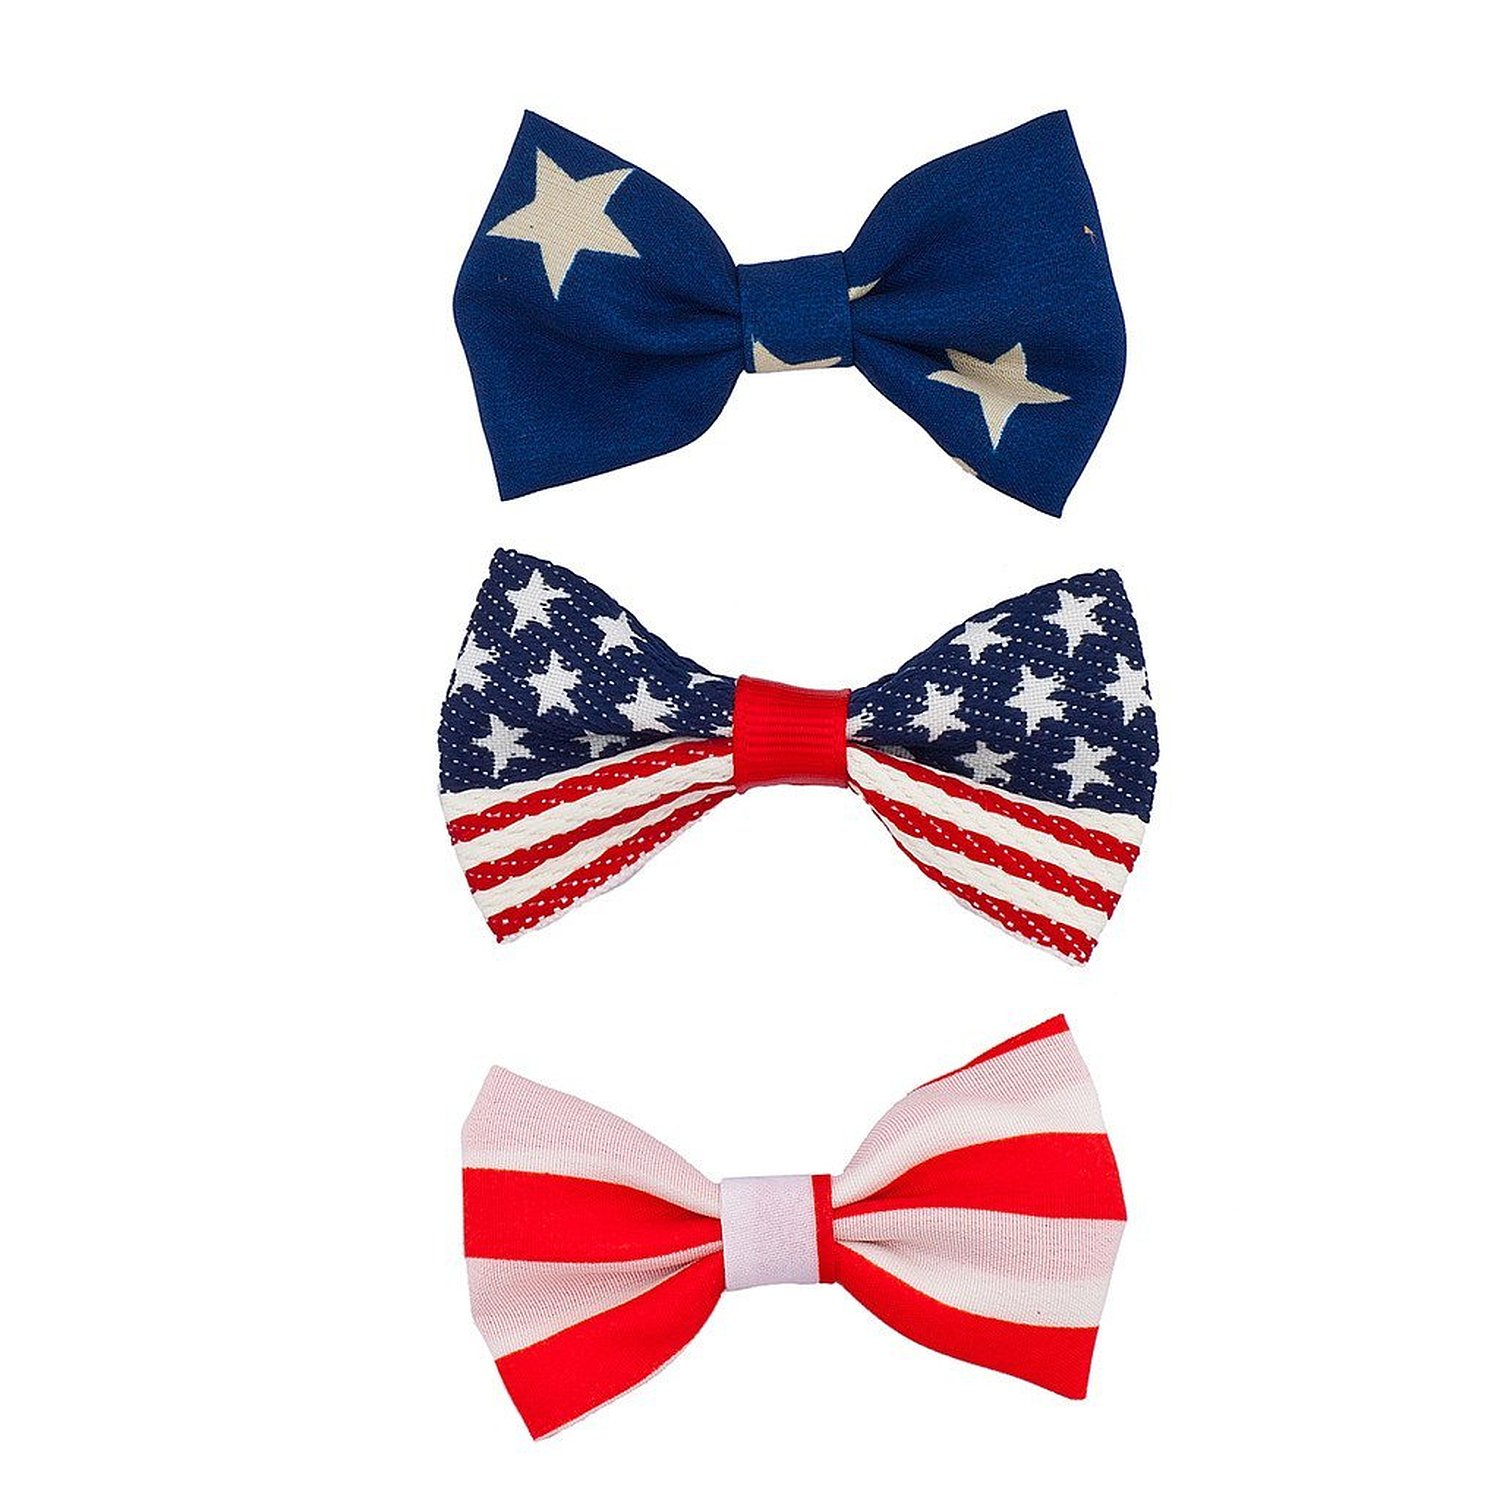 Lux Accessories July 4th Independence Day Patriotic Bow Pack (3PC)